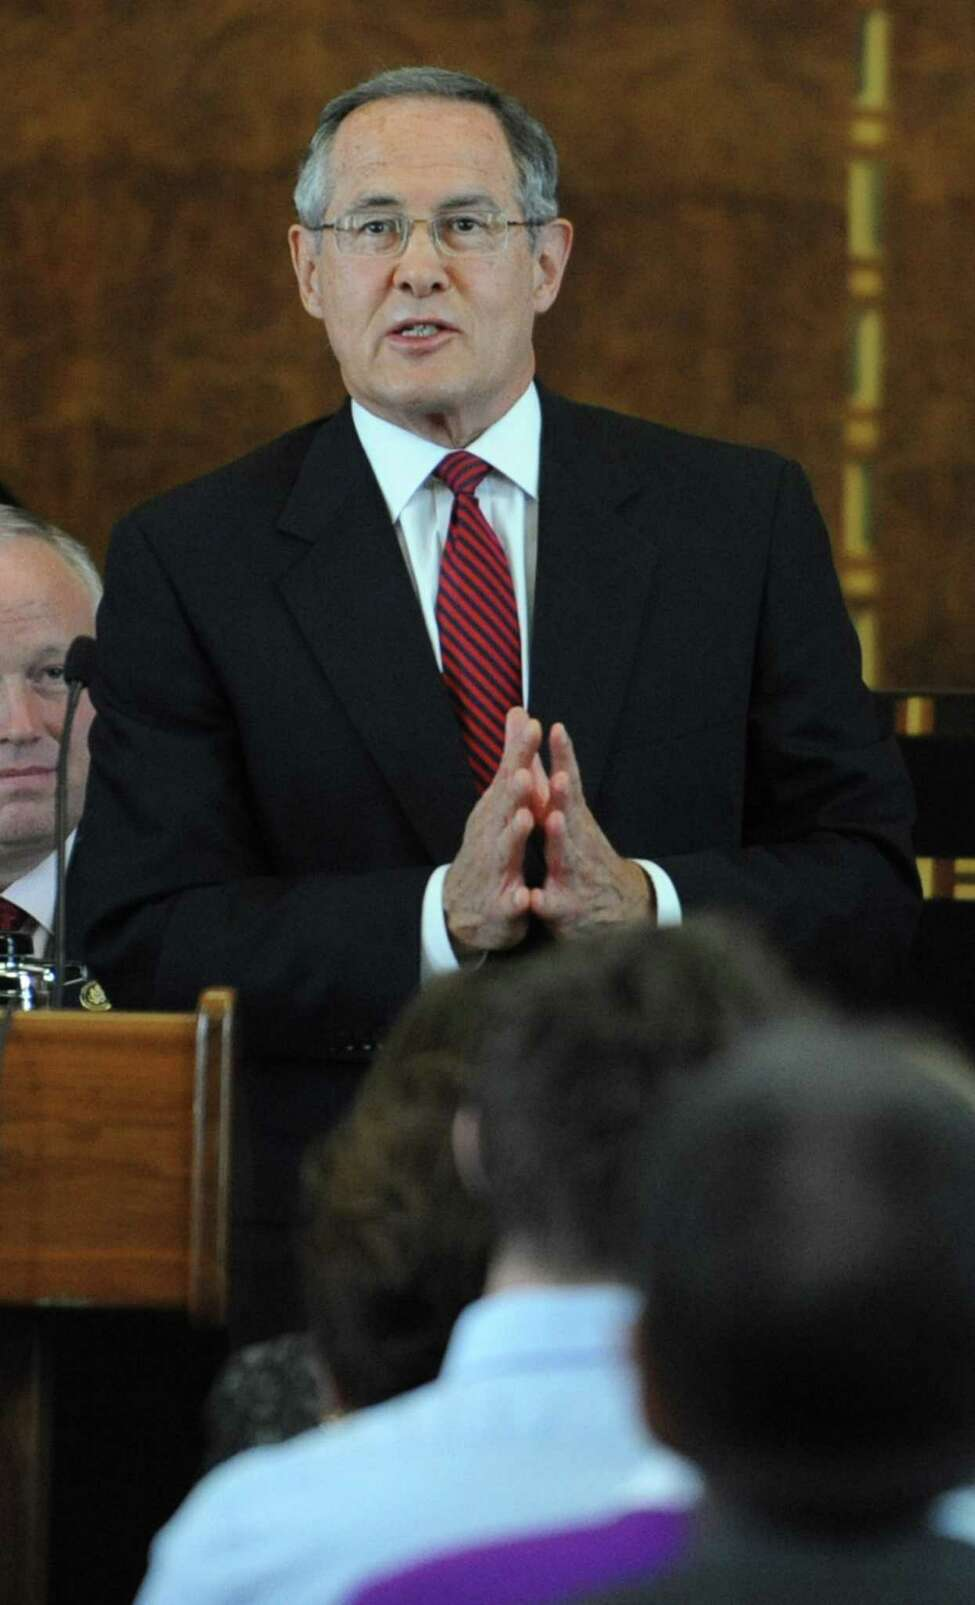 Attorney E. Stewart Jones speaks before U.S. District Judge Mae D'Agostino gets sworn in by Chief Judge Norman A. Mordue at the Federal Courthouse in Albany, N.Y. on Monday, Sept. 19, 2011. (Lori Van Buren / Times Union)